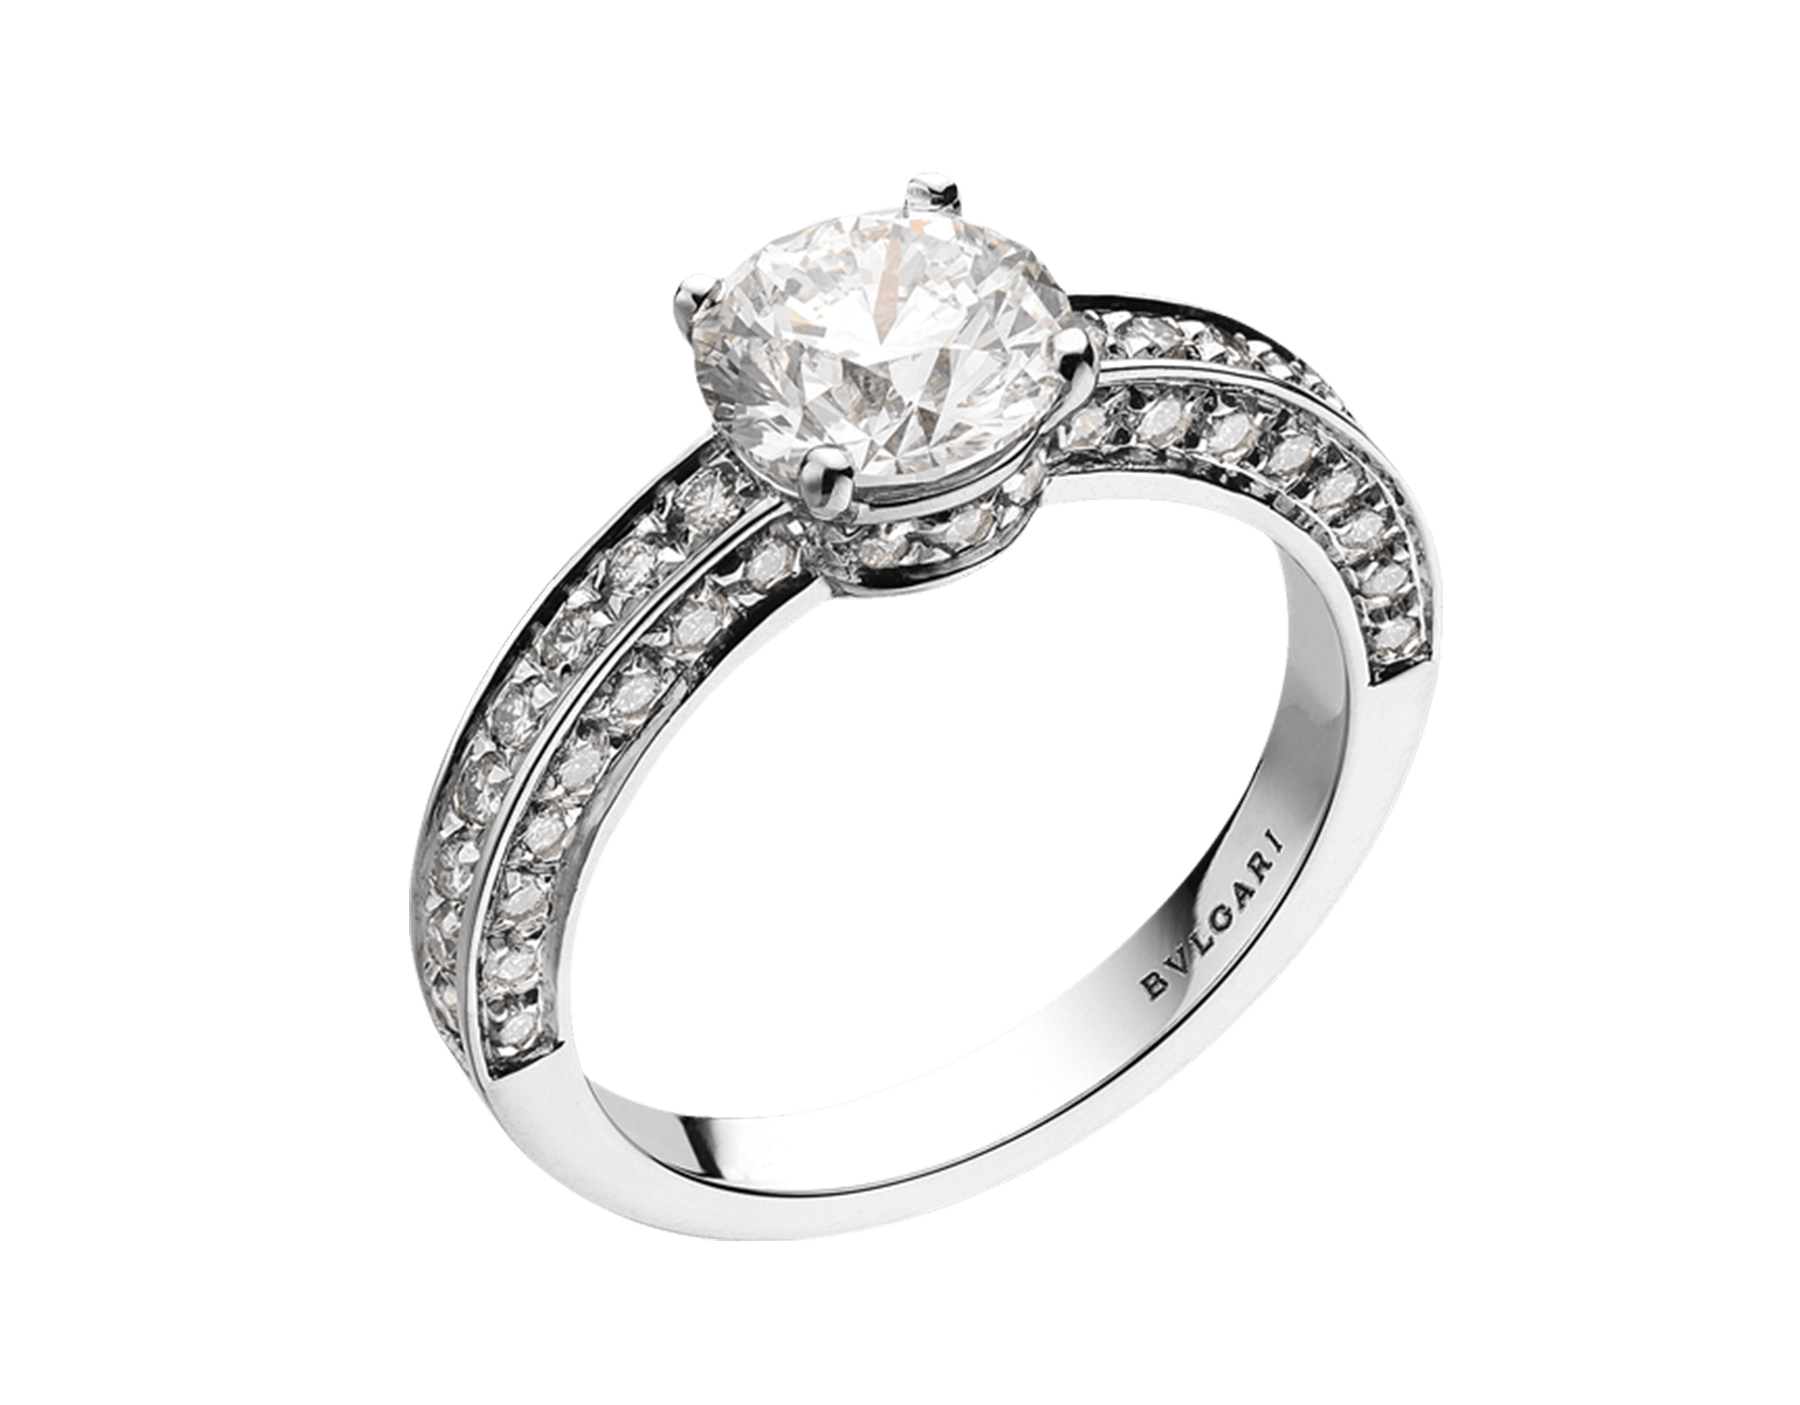 Dedicata a Venezia: 1503 solitaire ring in platinum with a round brilliant-cut diamond and pavé diamonds. Available from 0.30 ct. Named after the year in which the first engagement ring was offered in Venice. 344087 image 1